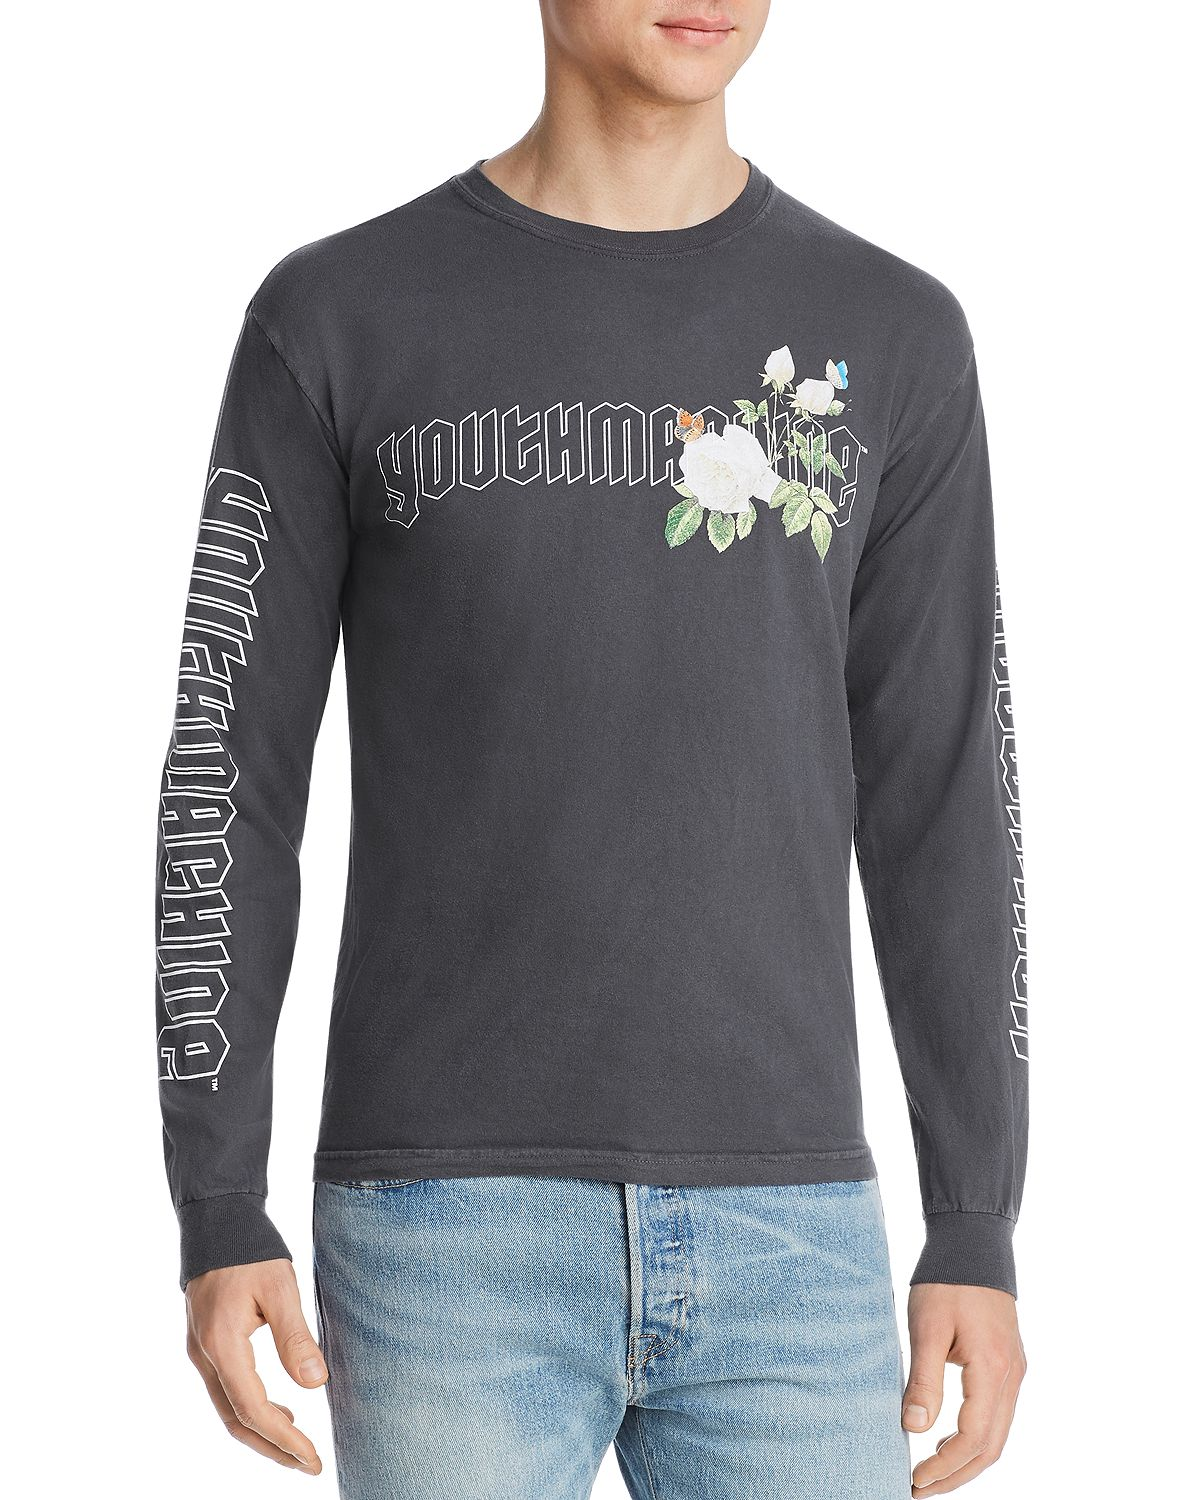 Youth Machine Secret Garden Long-sleeve Graphic Tee